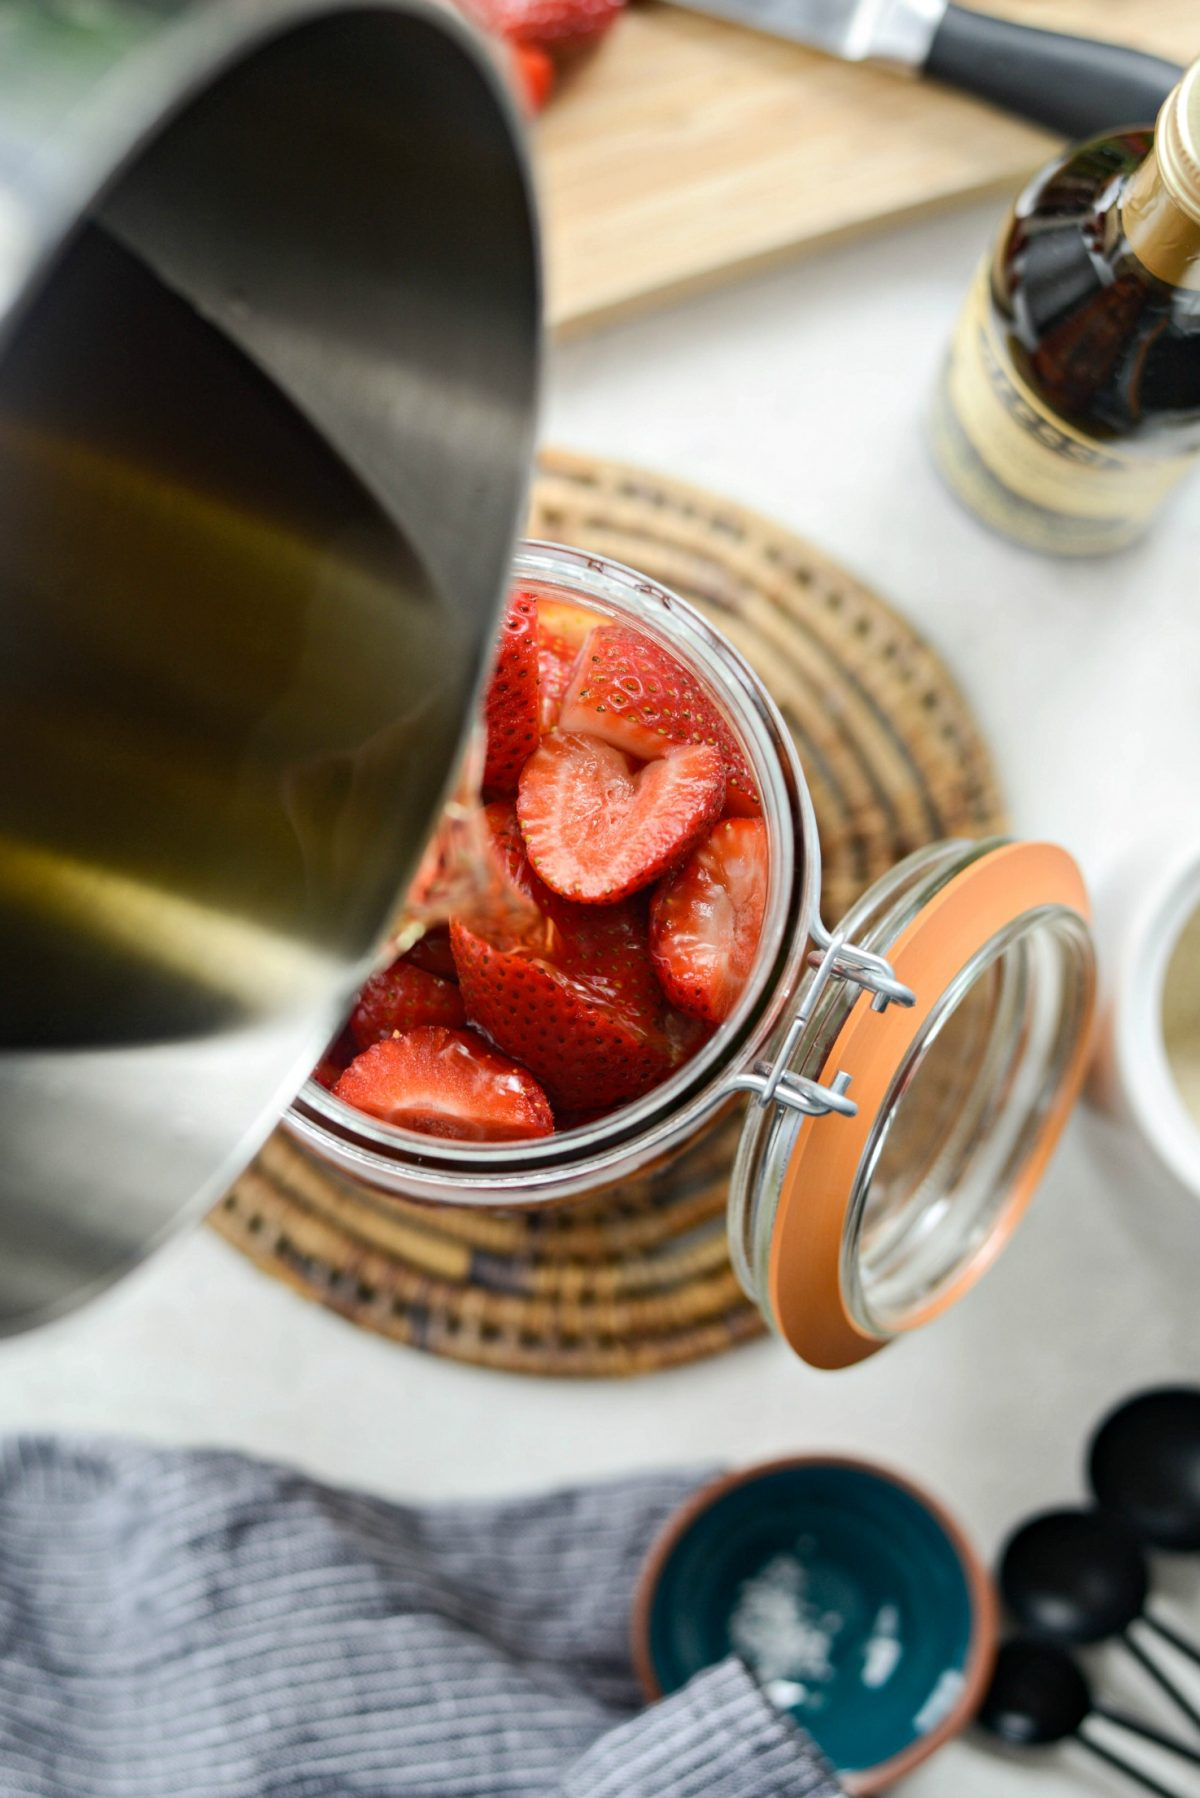 Pickled Strawberries l SimplyScratch.com #homemade #pickled #strawberries #easy #fromscratch #preserving